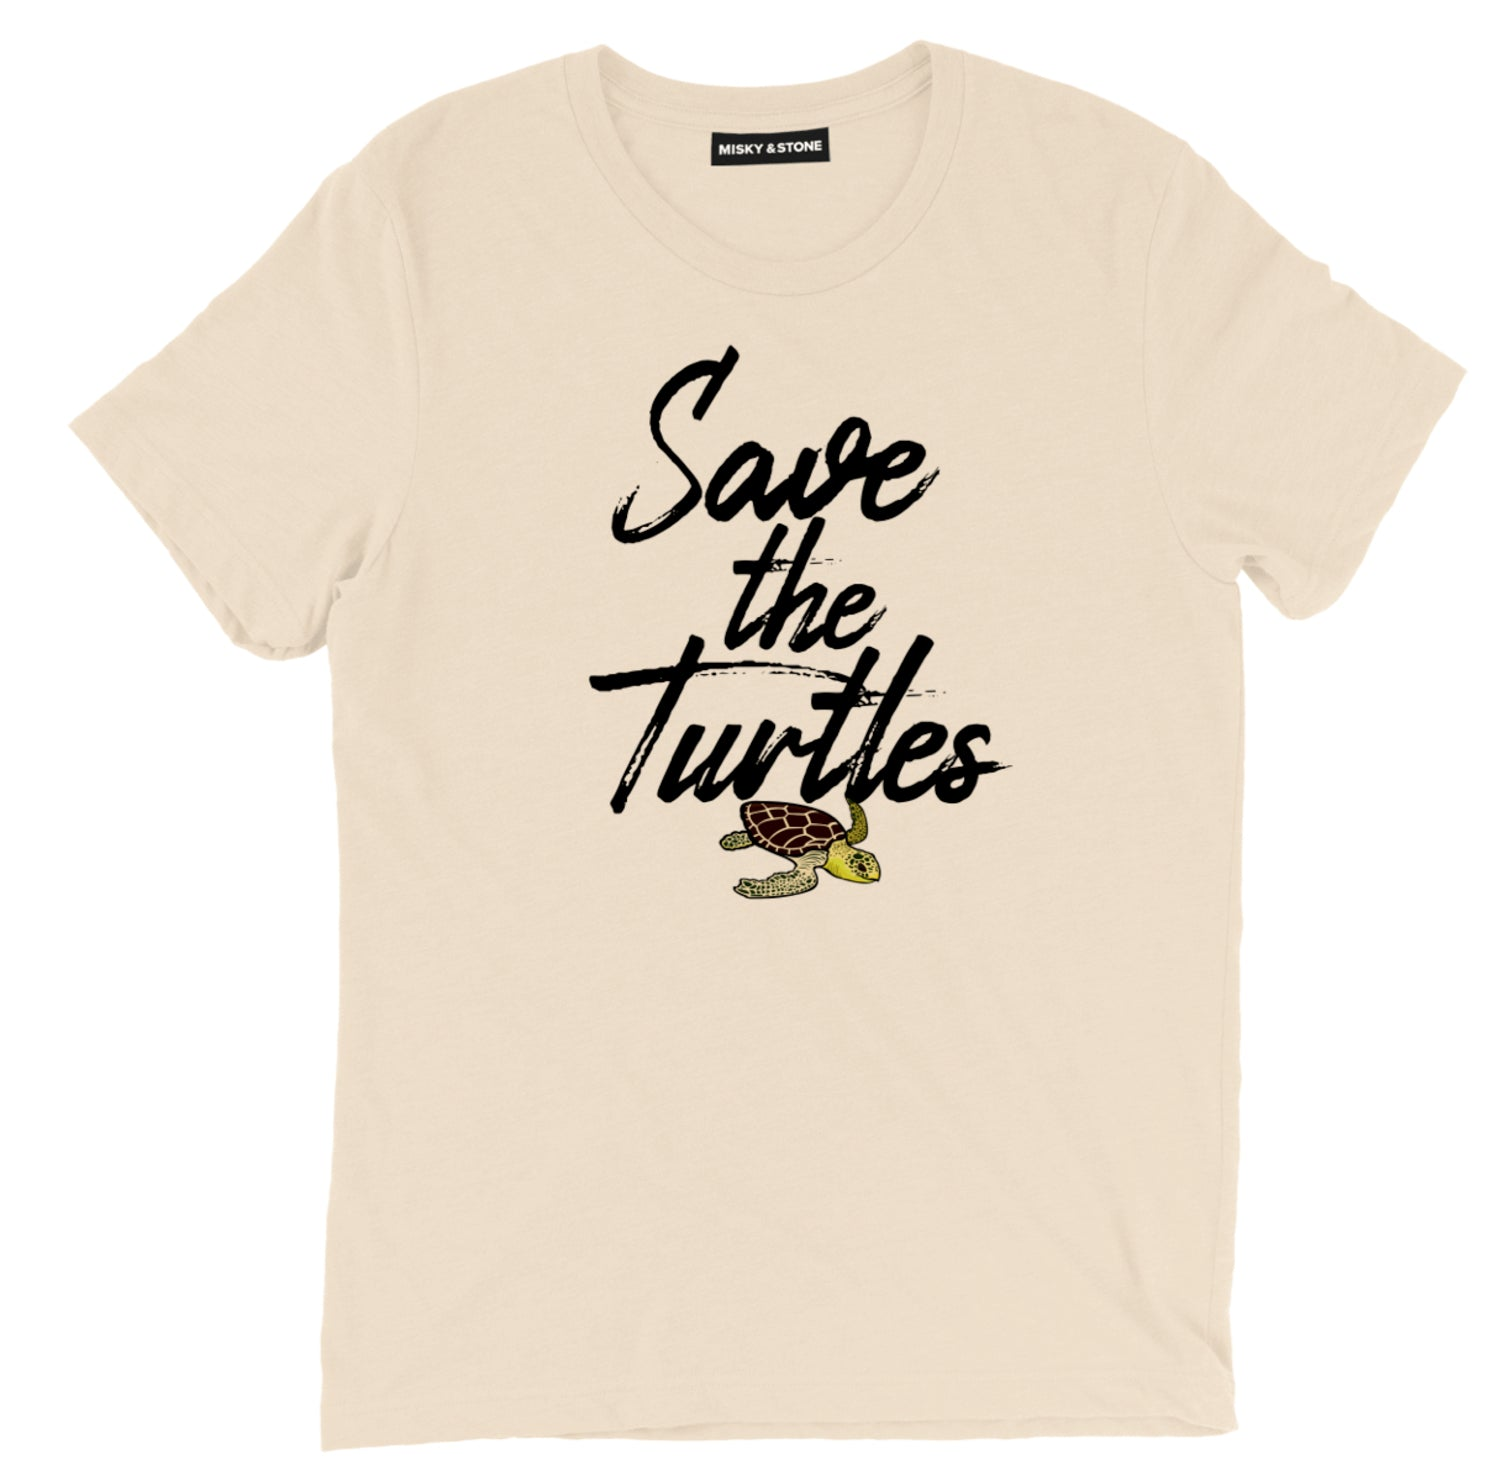 save the turtles tee, turtle shirt, i like turtles tee, turtle life tee, animal rescue tee, animal support tee, turtle tees